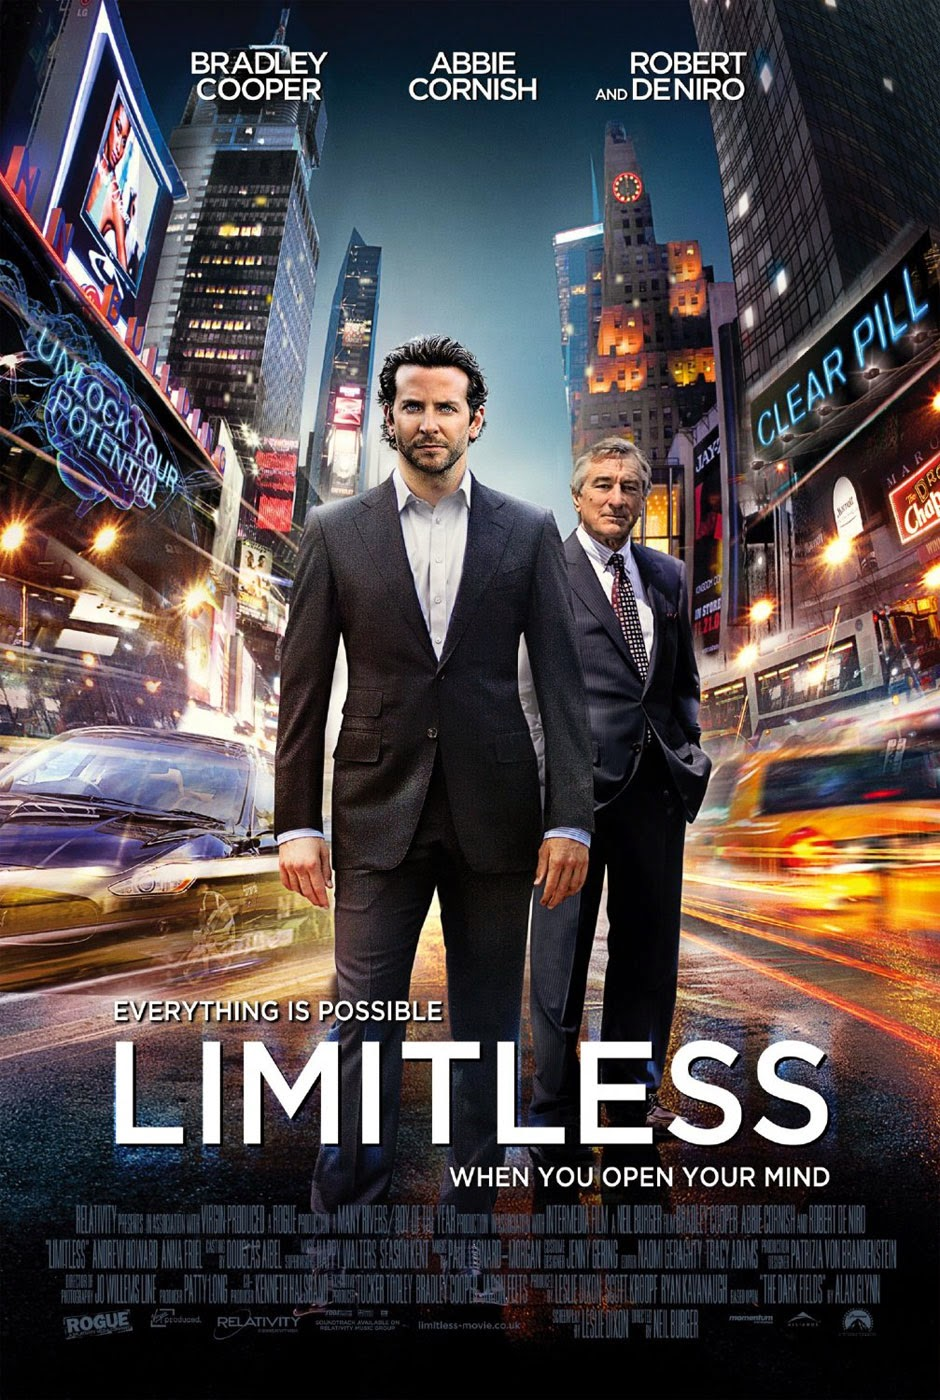 Limitless 2011 movie poster search online.